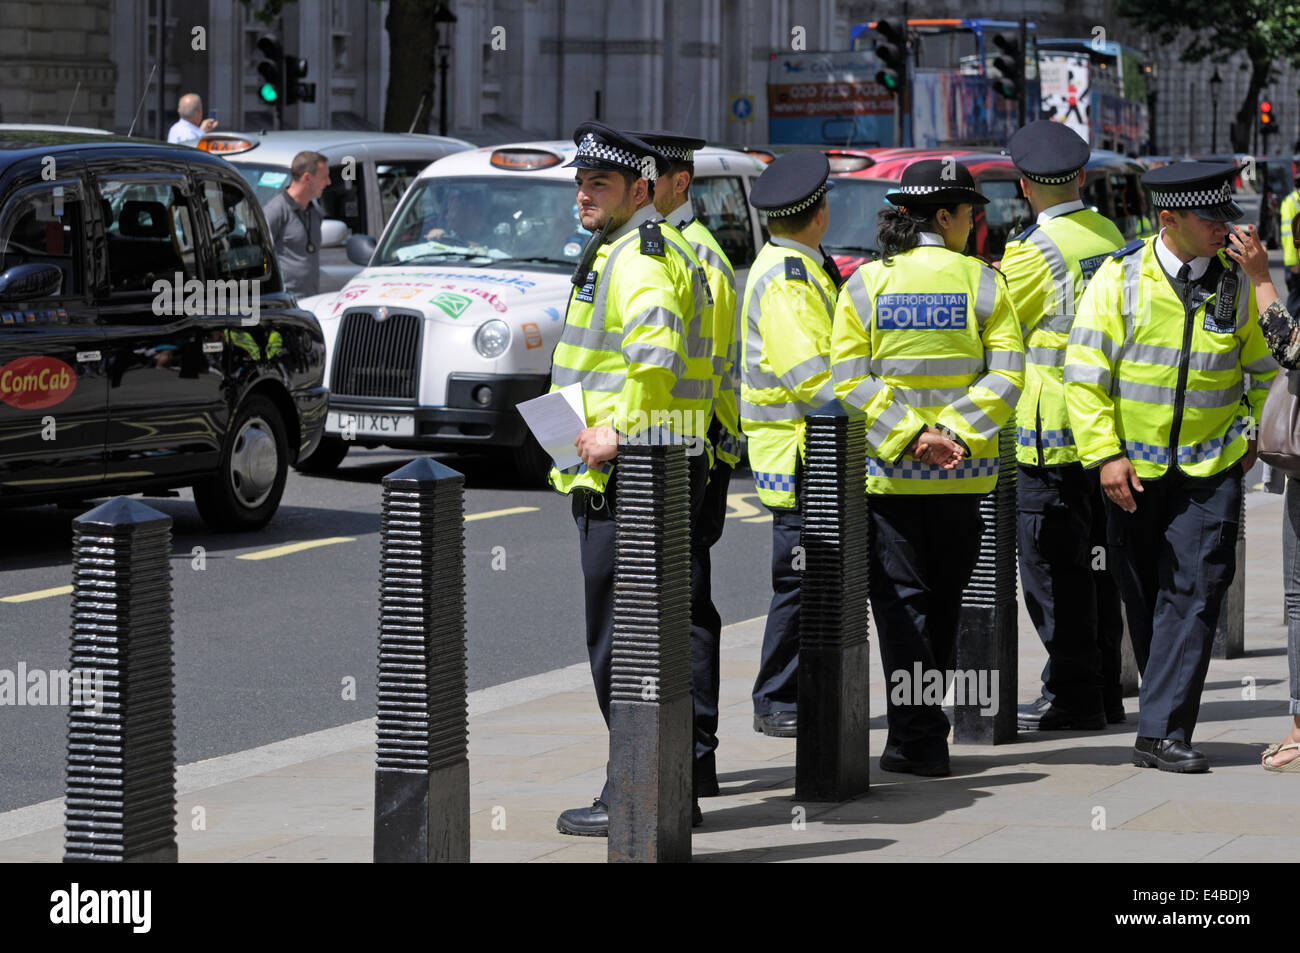 London, England, UK. Metropolitan police officers on duty during a taxi drivers' protest in central London, - Stock Image